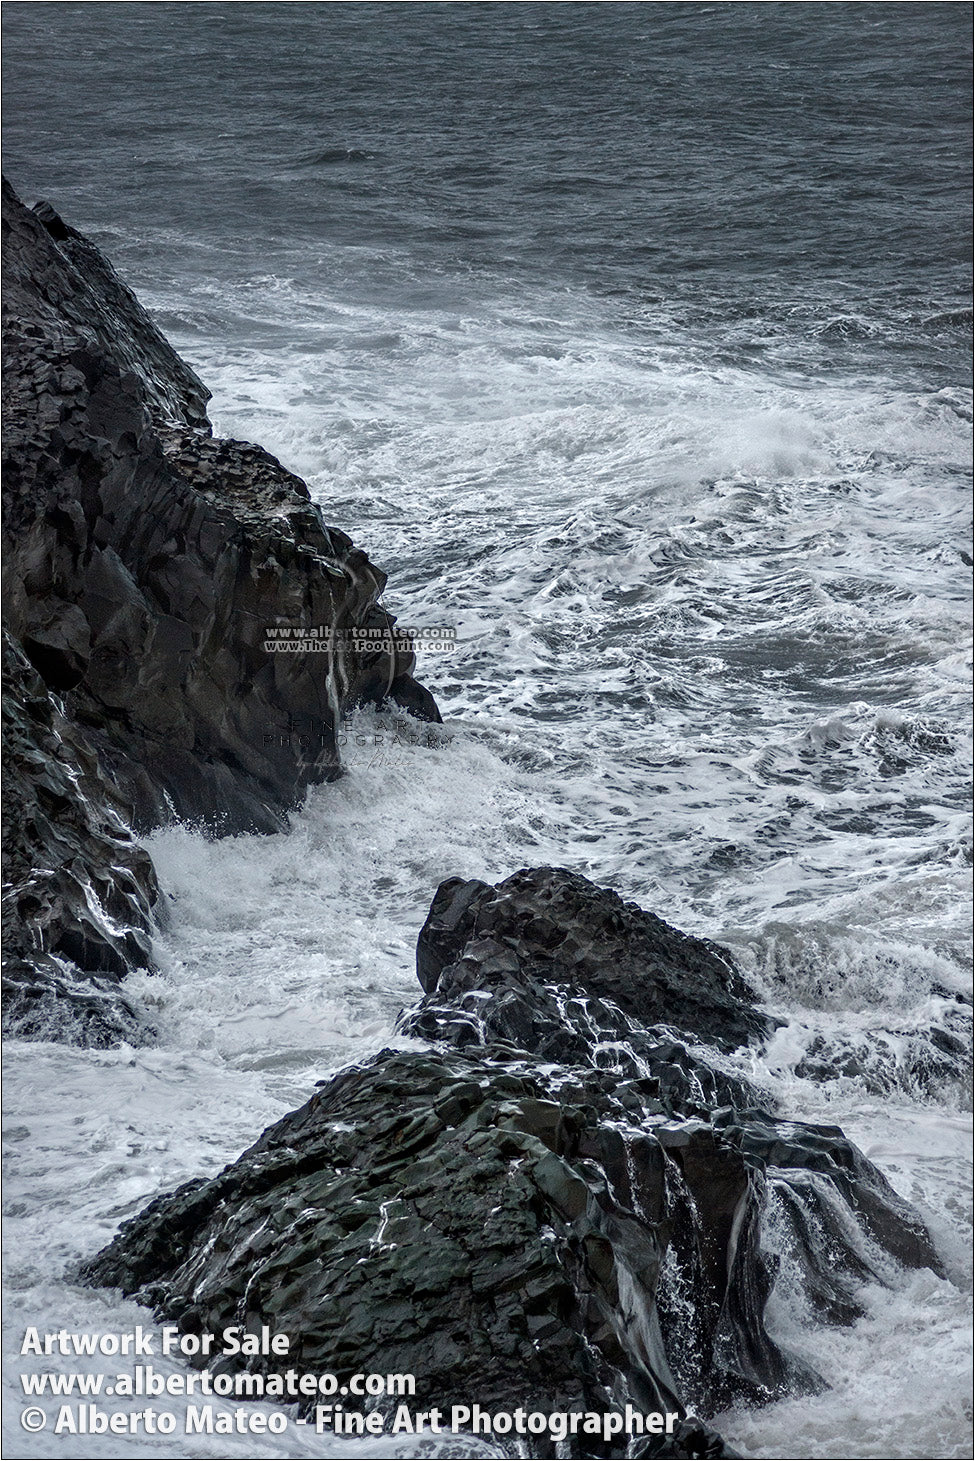 Sea Gale, Breaking Waves, Dyorhaley, Iceland. 1/5